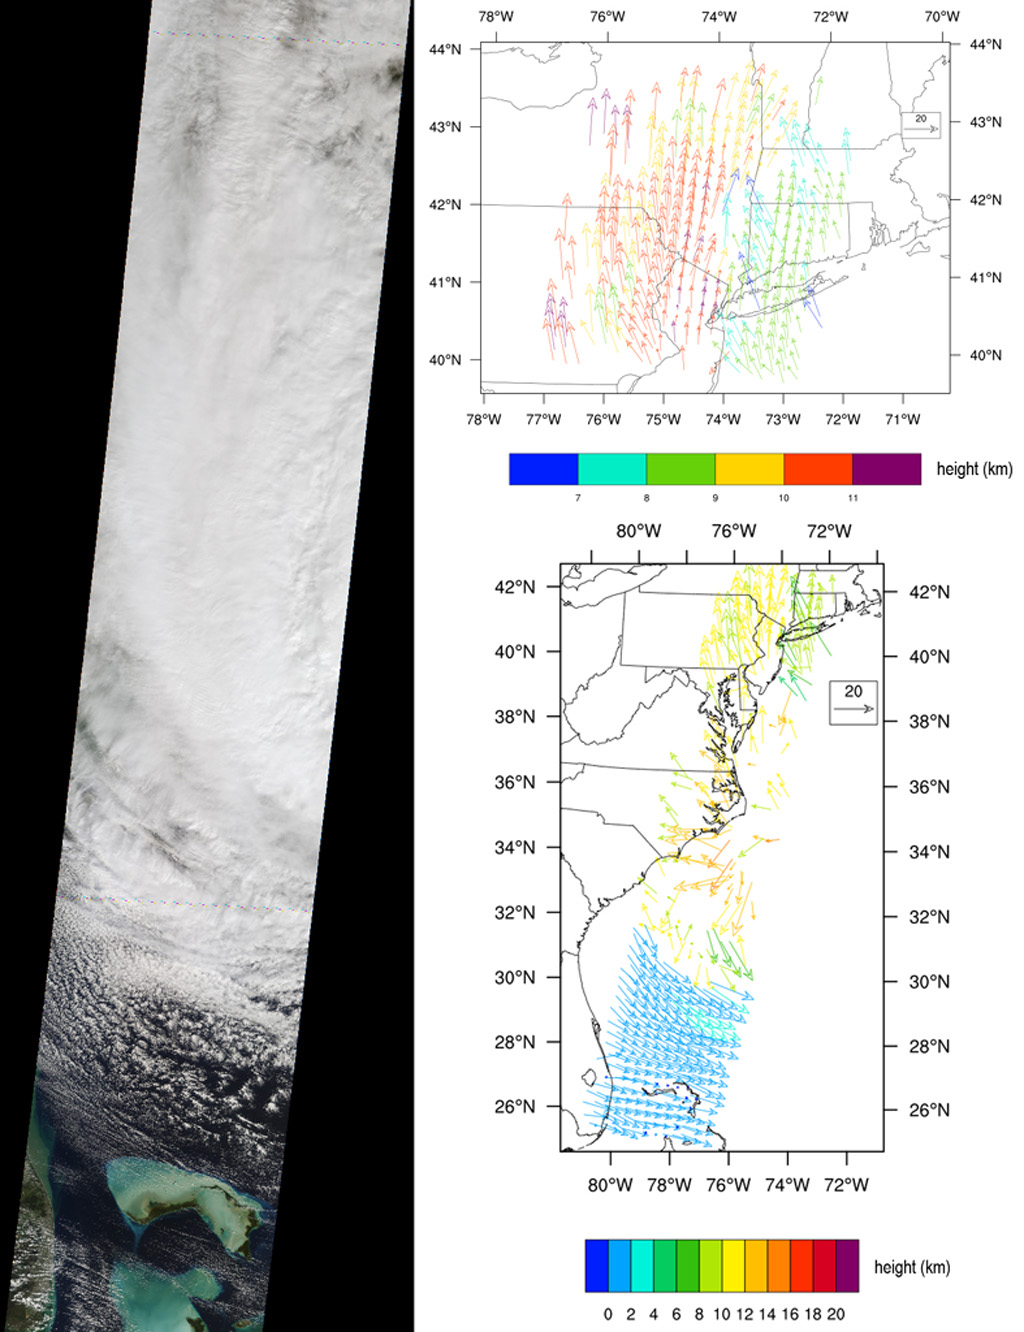 NASA's Terra spacecraft captured this imagery and data over Hurricane Sandy as the storm approached the U.S. east coast on Oct. 28, 2012. The image at left covers an area 250 miles (400 kilometers) wide and extends from Massachusetts to Florida.